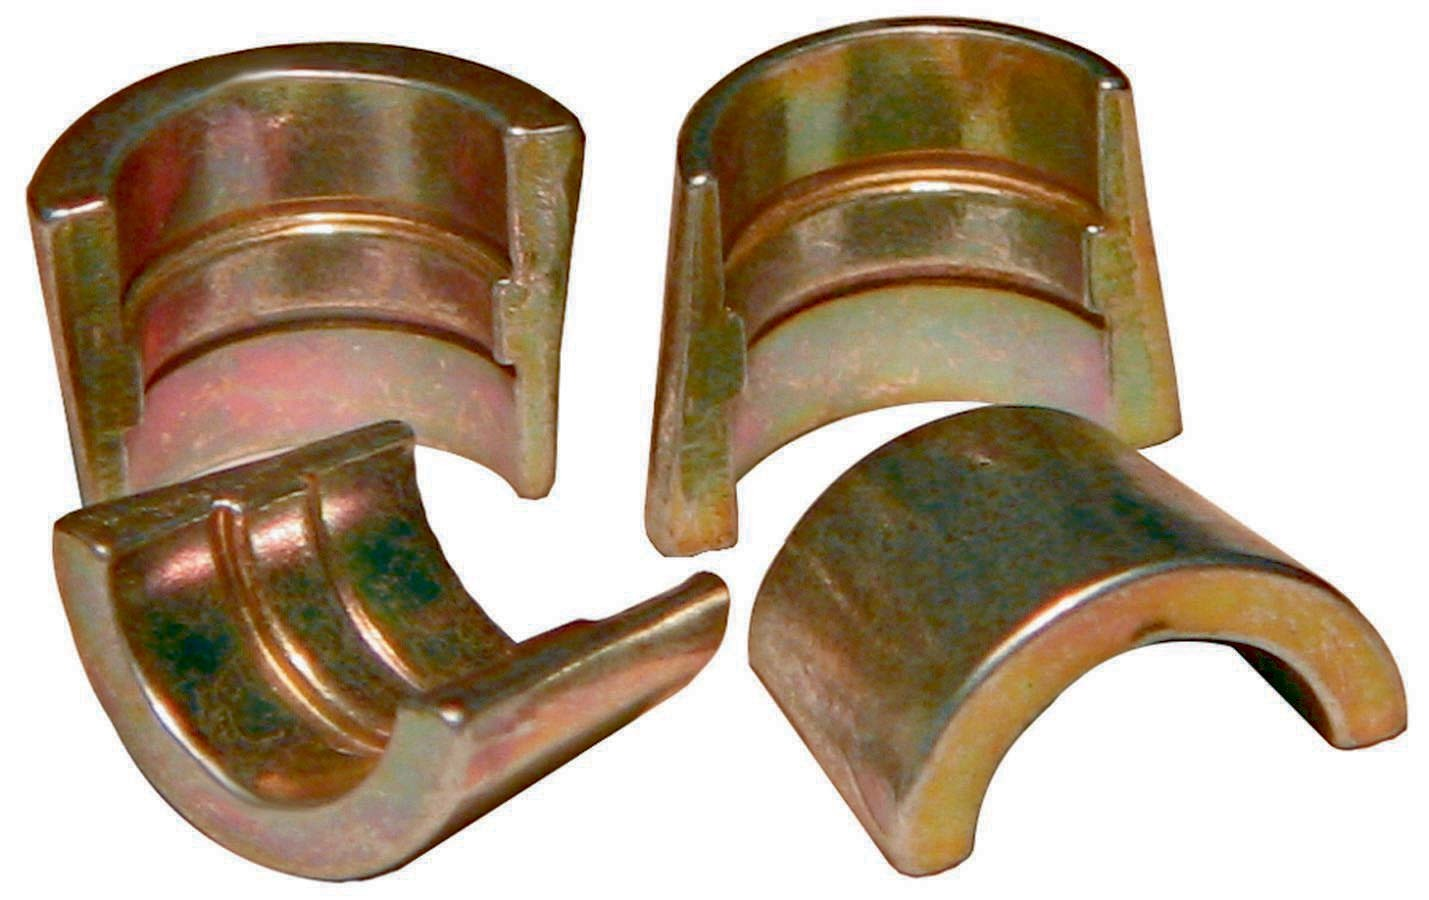 Howards Racing Components Valve Locks - 11/32 7 Degree - Forged